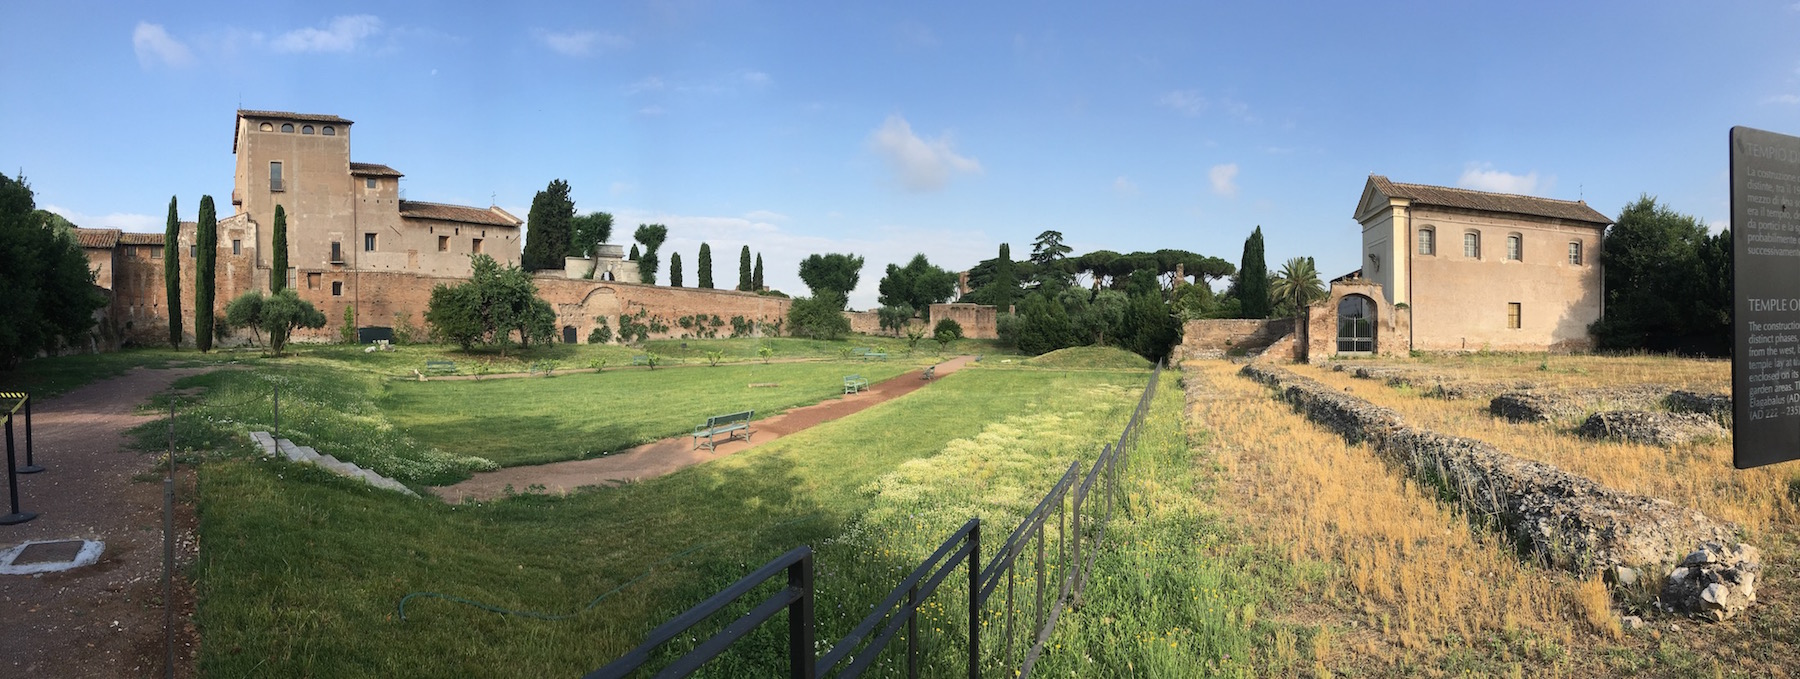 "Work to begin on 'Anello', Francesco Arena's site-specific installation on the Palatine. Russo: ""An important milestone inaugurating the entry of contemporary art into the Parco"""